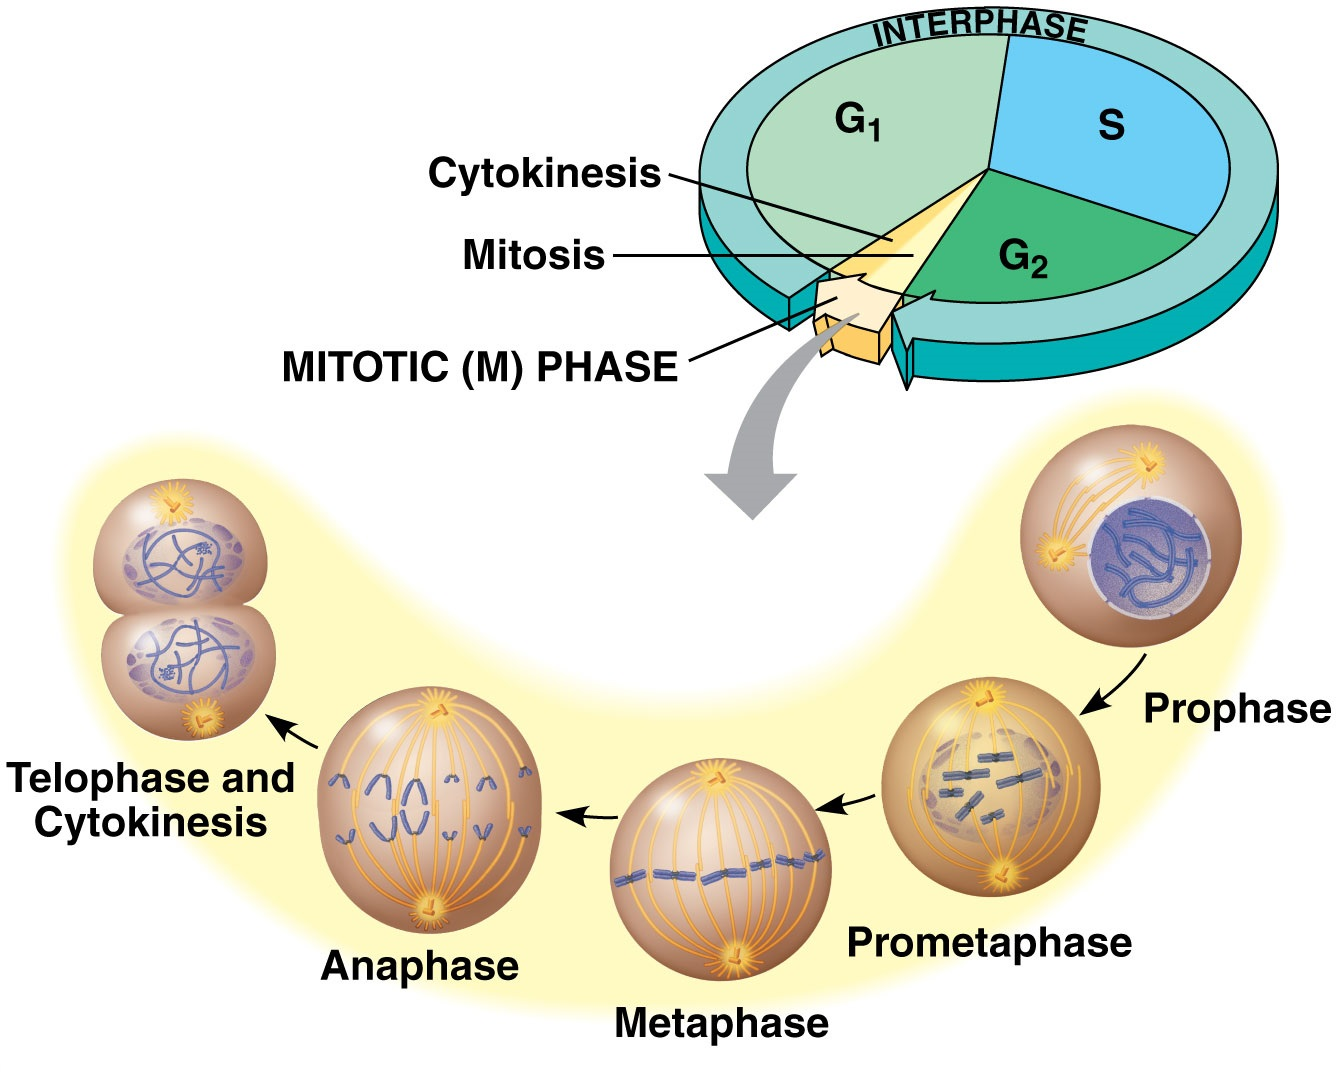 the phases of the cell cycle Interphase (cell does its normal function) mitosis (division of the nucleus) cytokinesis (division of the cytoplasm which results in two cells) the interphase is divided into g1, s, and g2 phase.